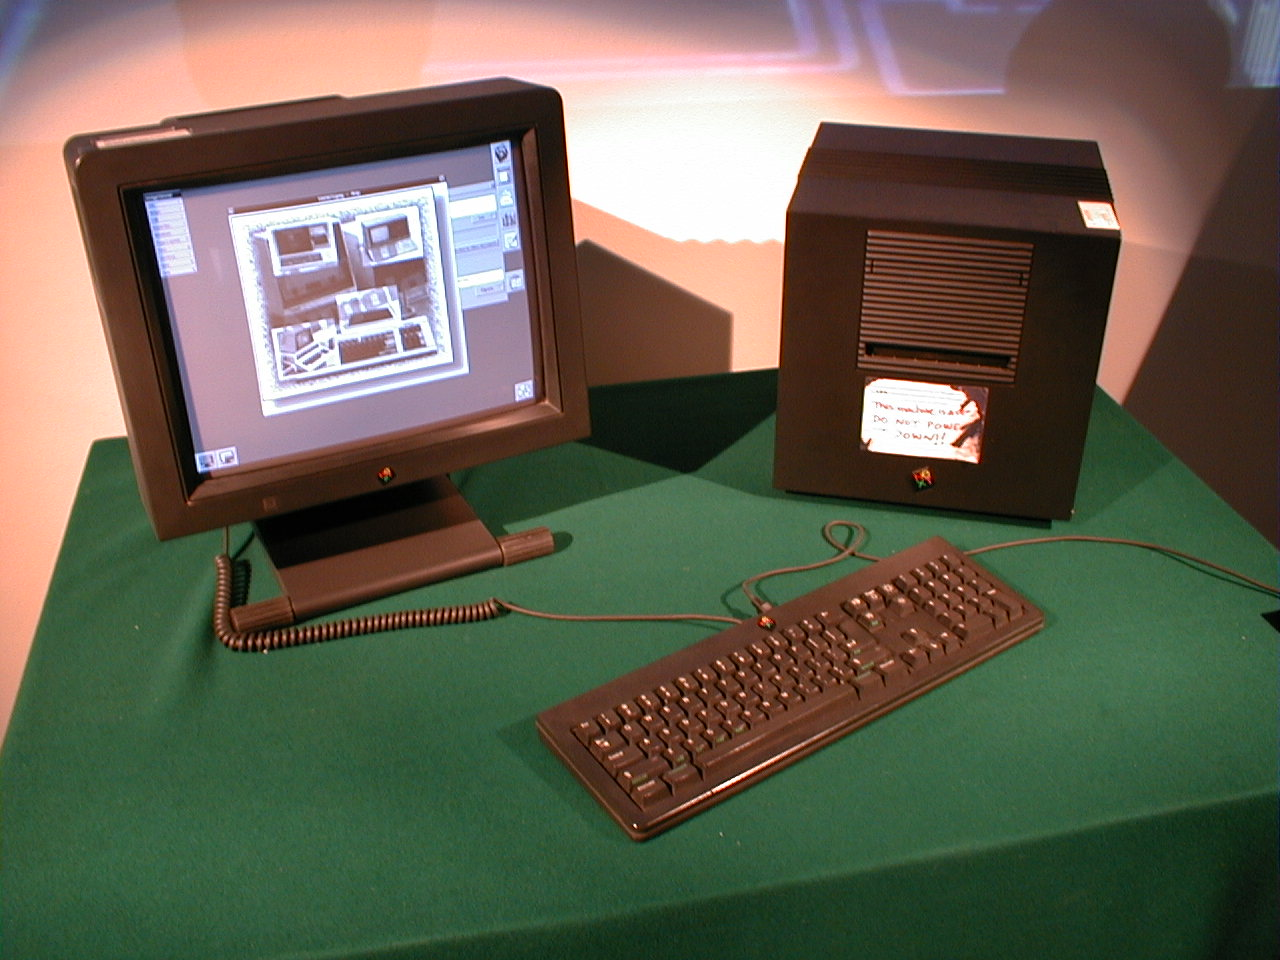 The World Wide Web is thirty years old